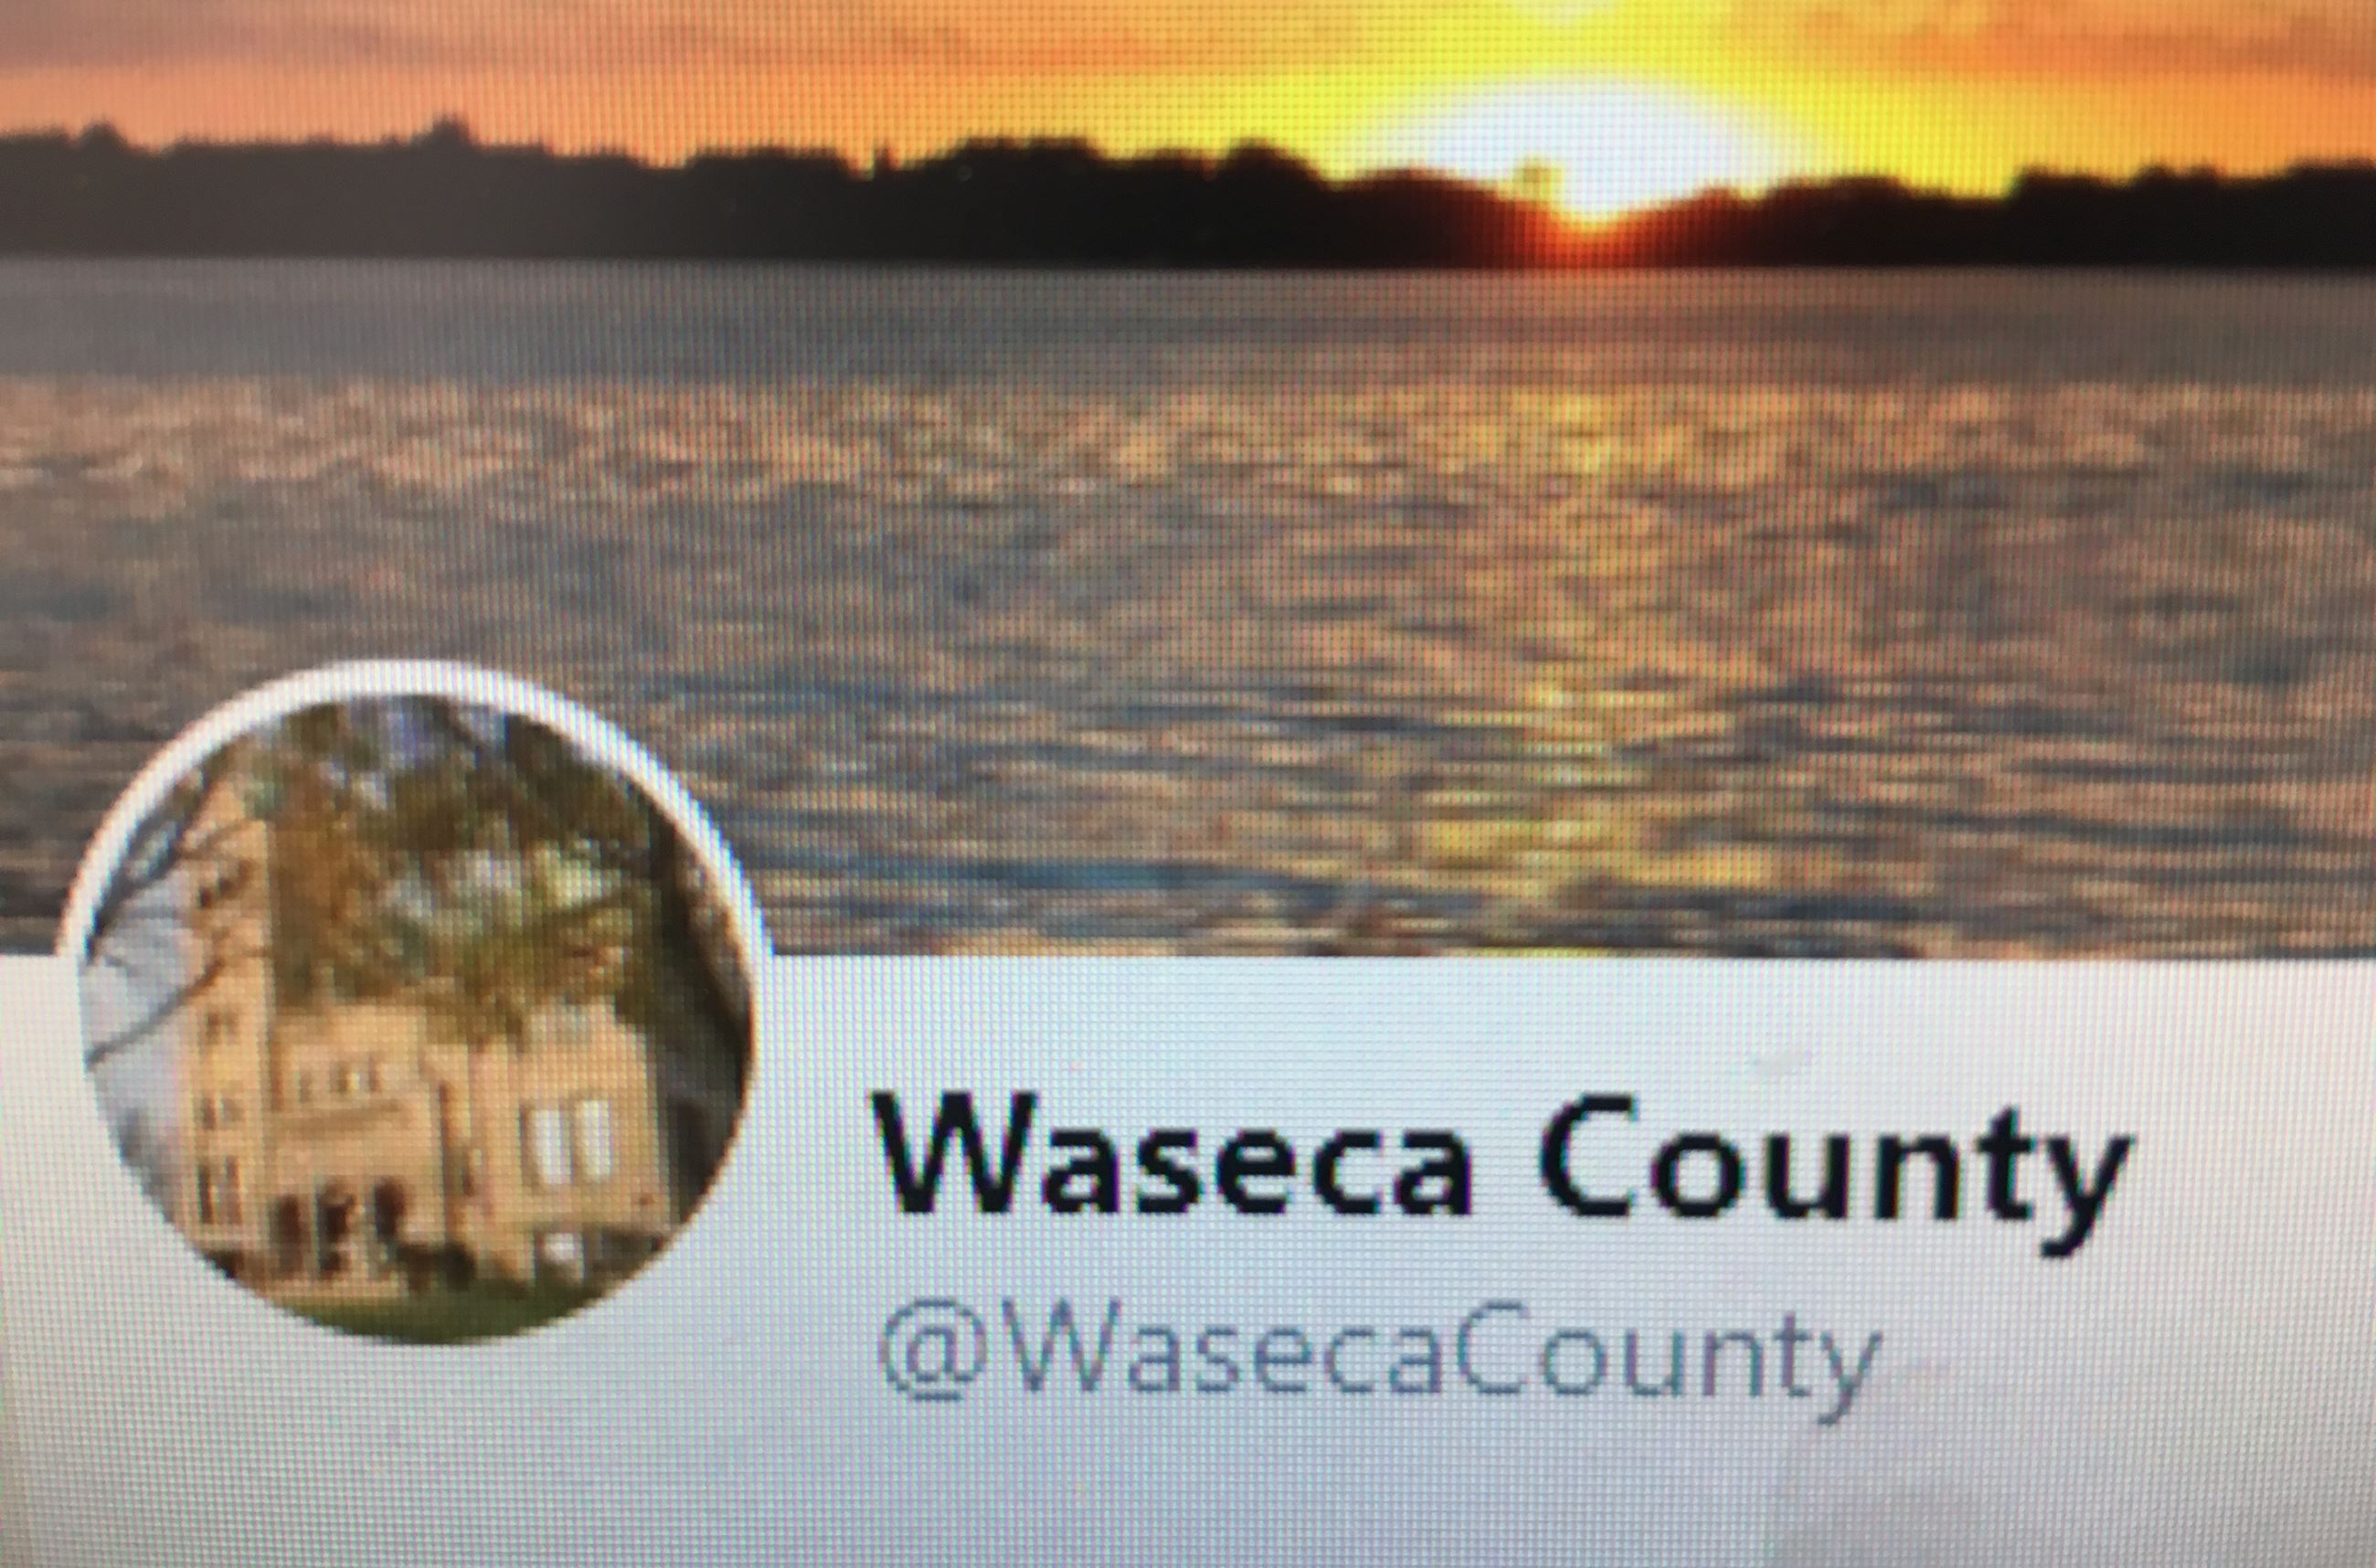 Waseca County Twitter